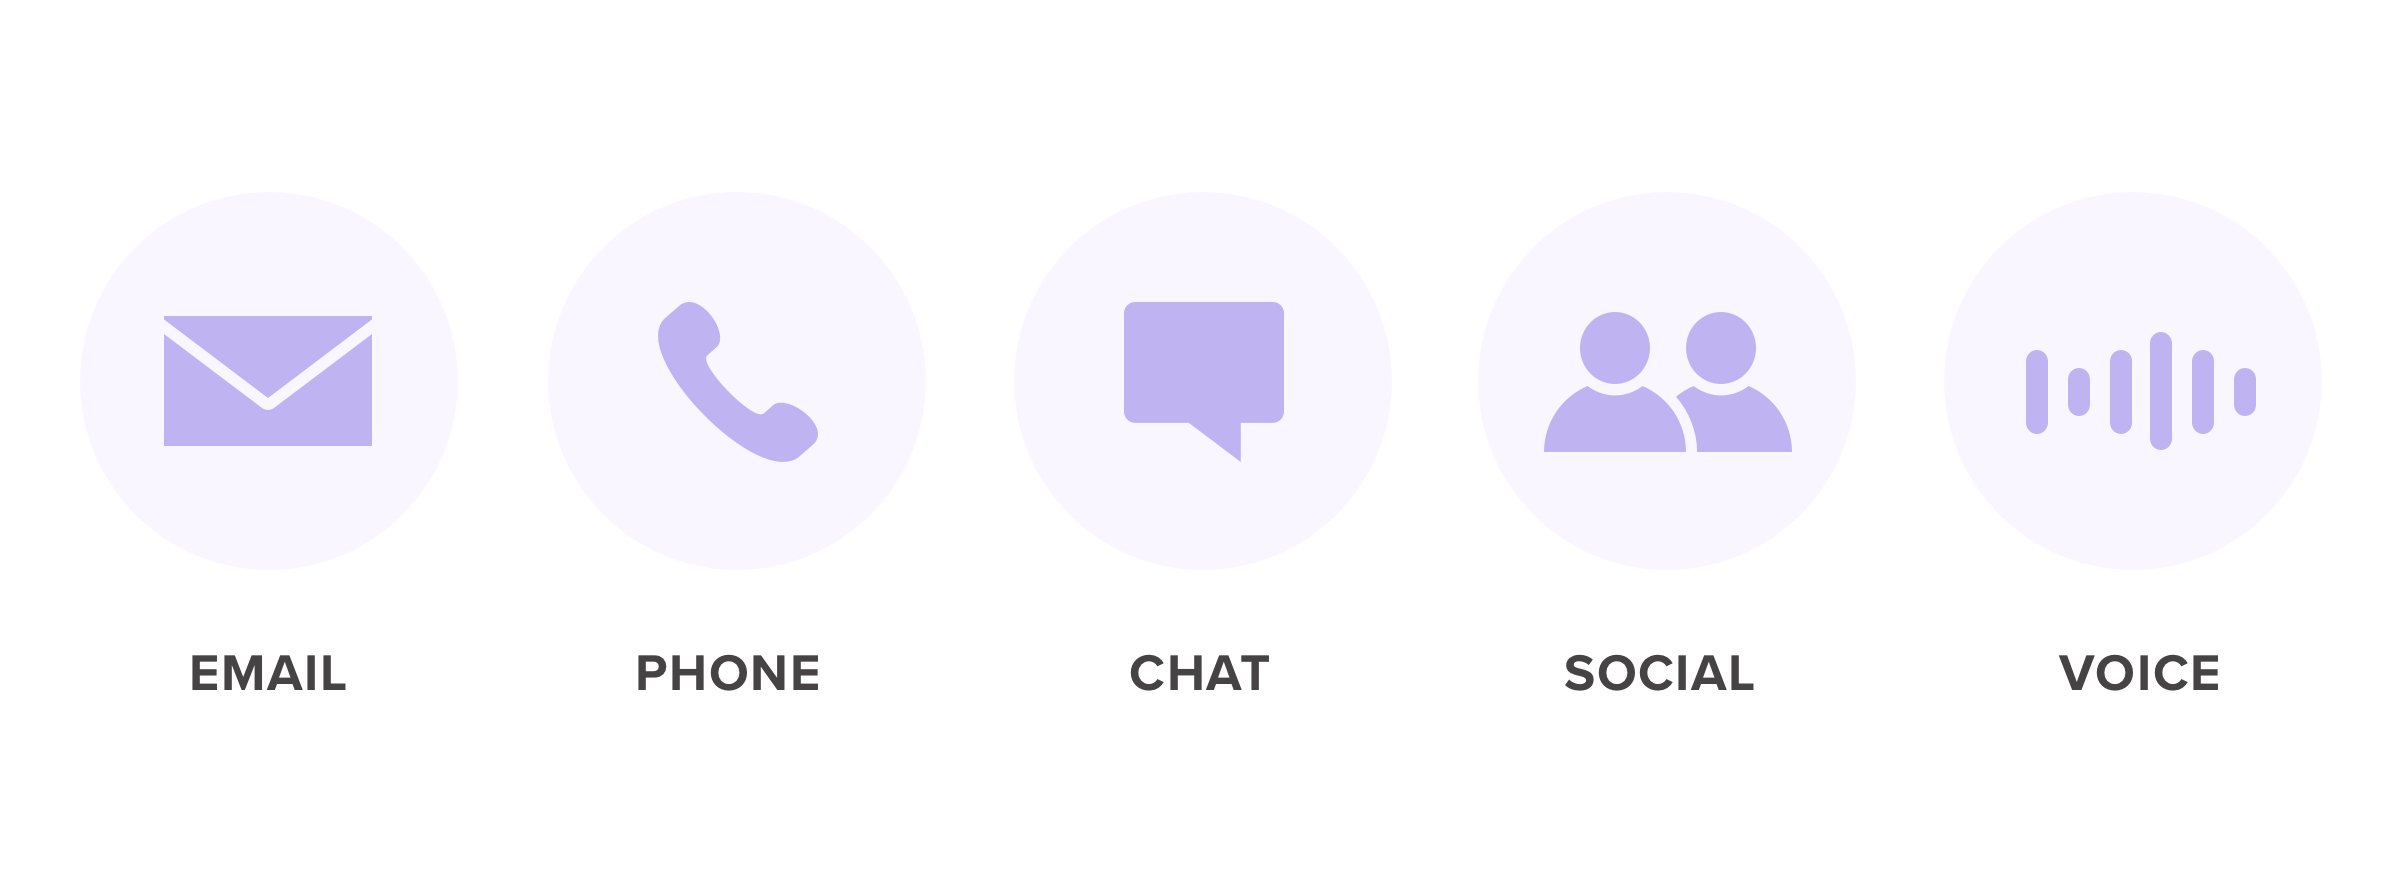 Different customer service channels featuring email, phone, chat, social, and voice icons